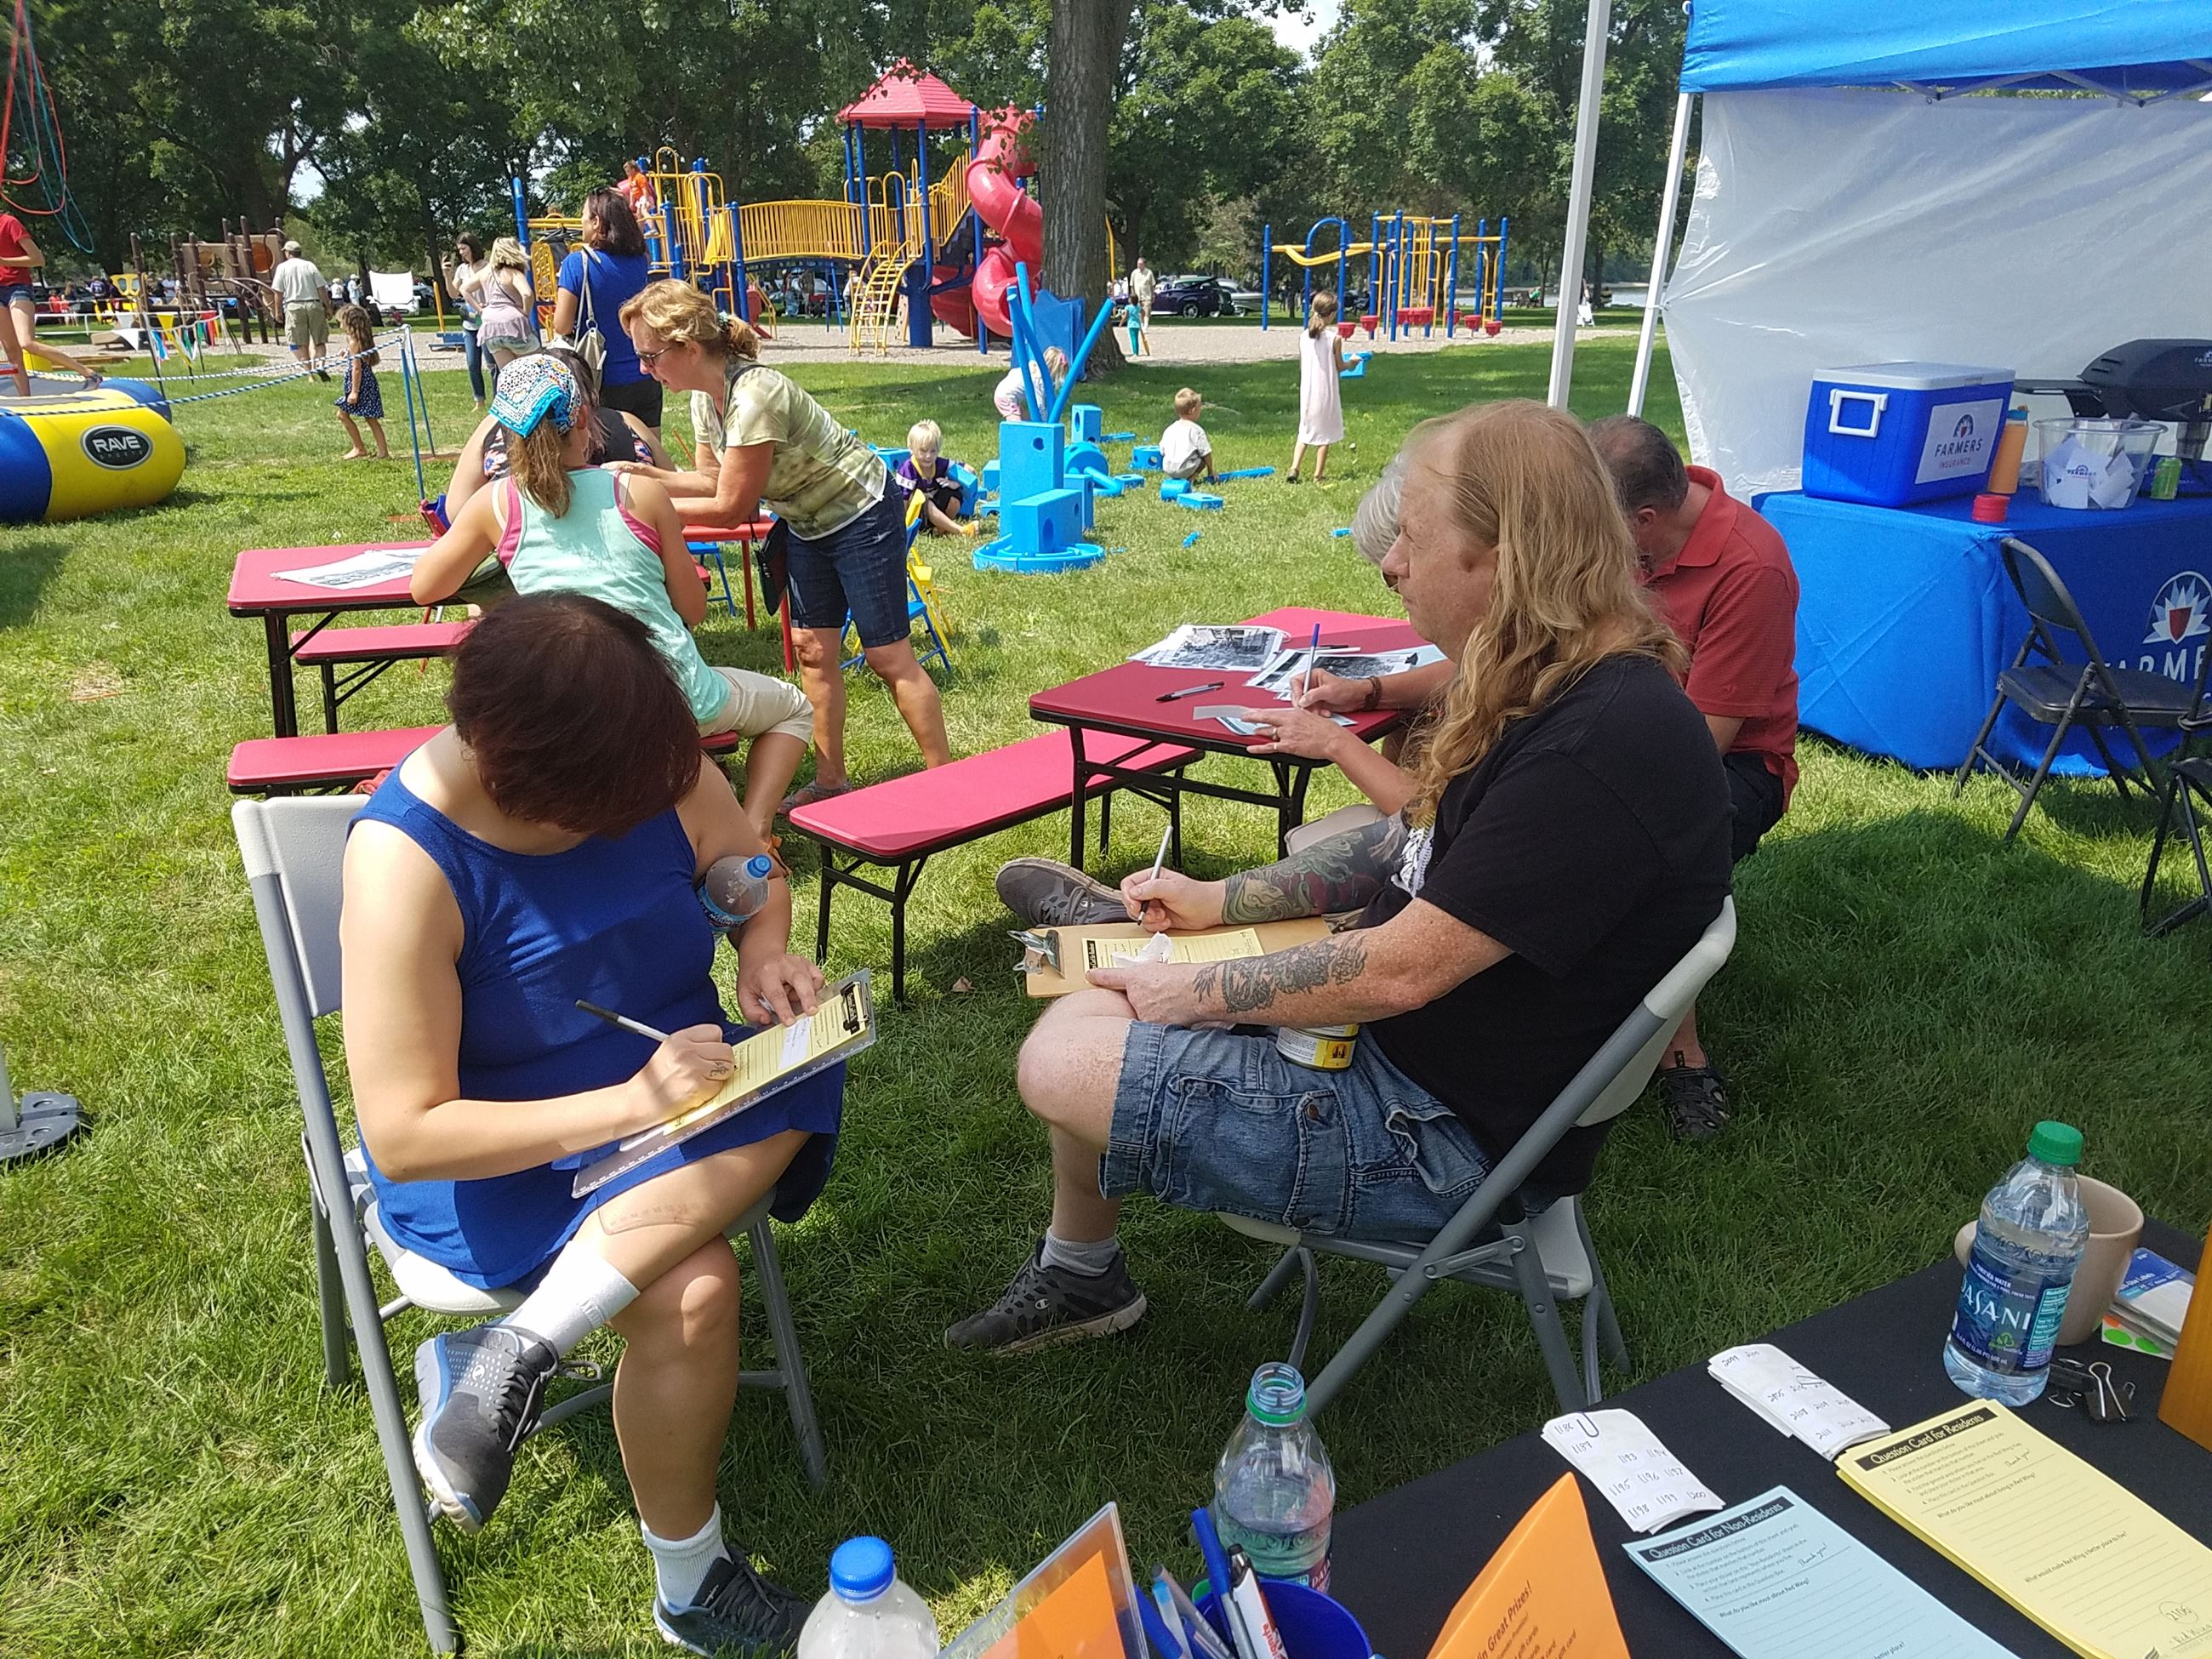 Image of residents filling out 2040 Question Cards at River City Days 2017